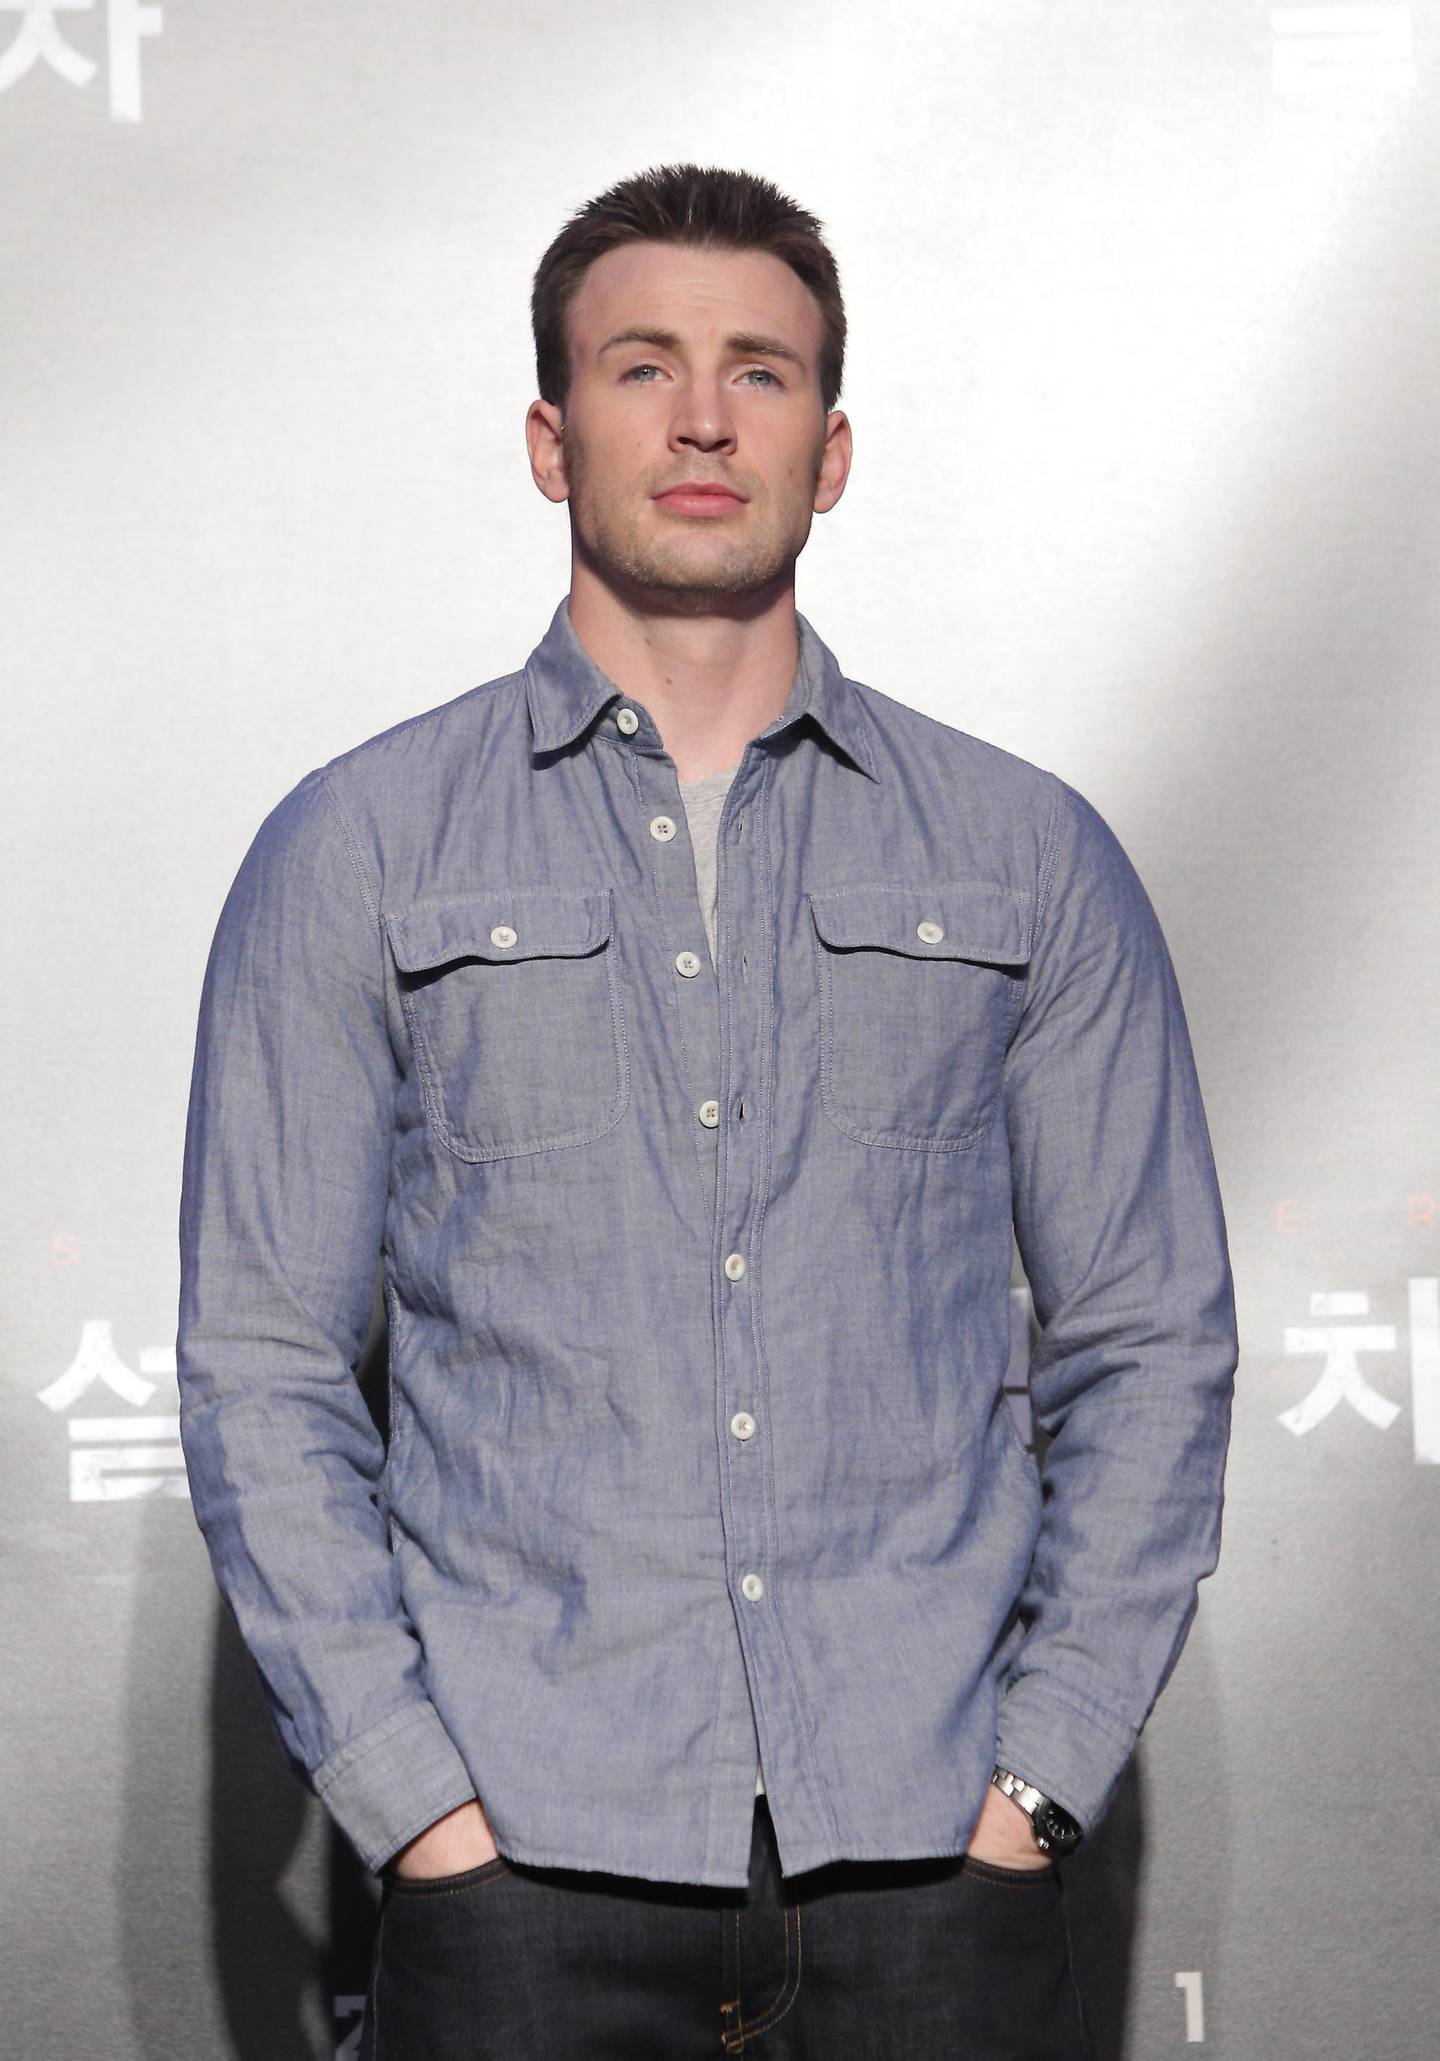 SEOUL, SOUTH KOREA - JULY 29:  Actor Chris Evans attends the 'Snowpiercer' press conference at Conrad Hotel on July 29, 2013 in Seoul, South Korea. The film will open in South Korea on August 1.  (Photo by Chung Sung-Jun/Getty Images) *** Local Caption ***  AL06AU-HOLLYBOLLY-EVANS.jpg